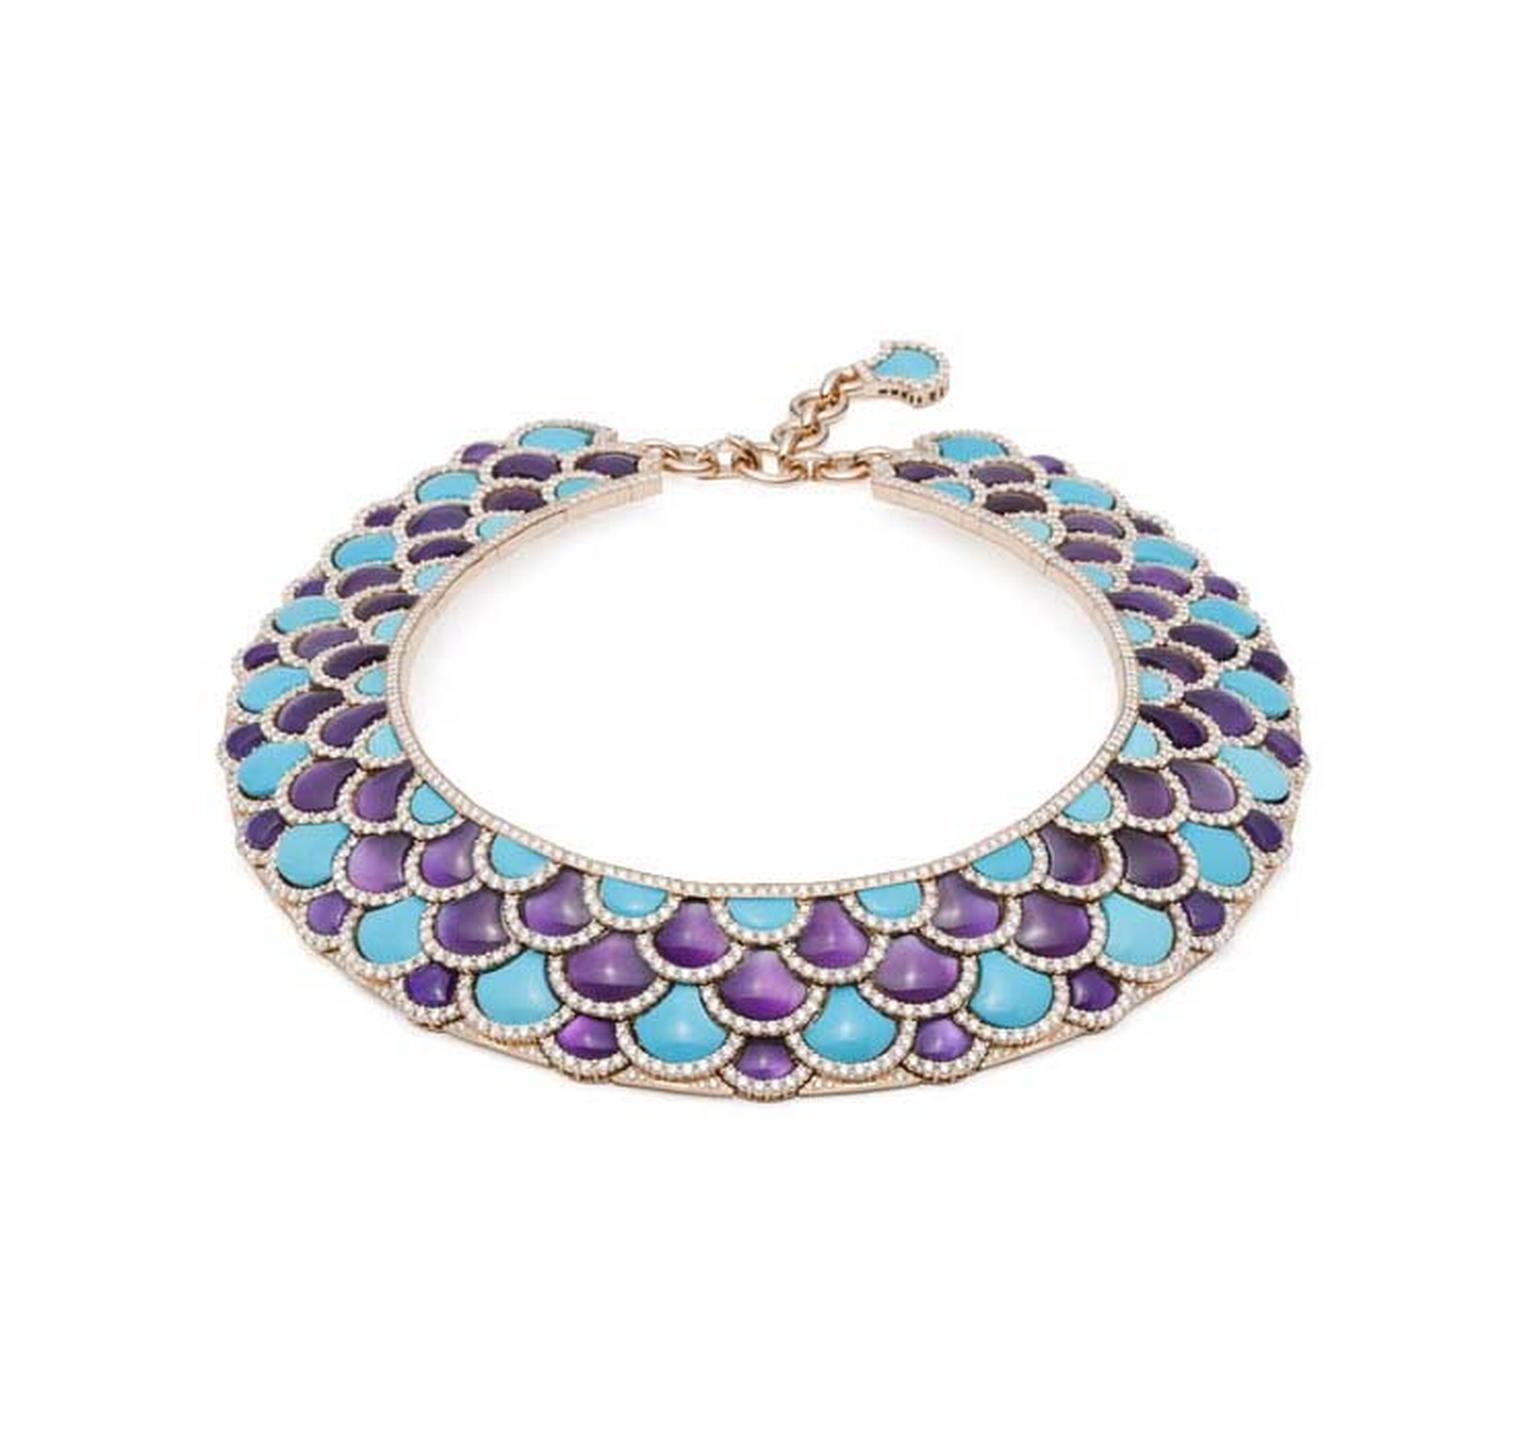 Giampiero Bodino Mosaico necklace with turquoise, amethysts and brilliant-cut diamonds.